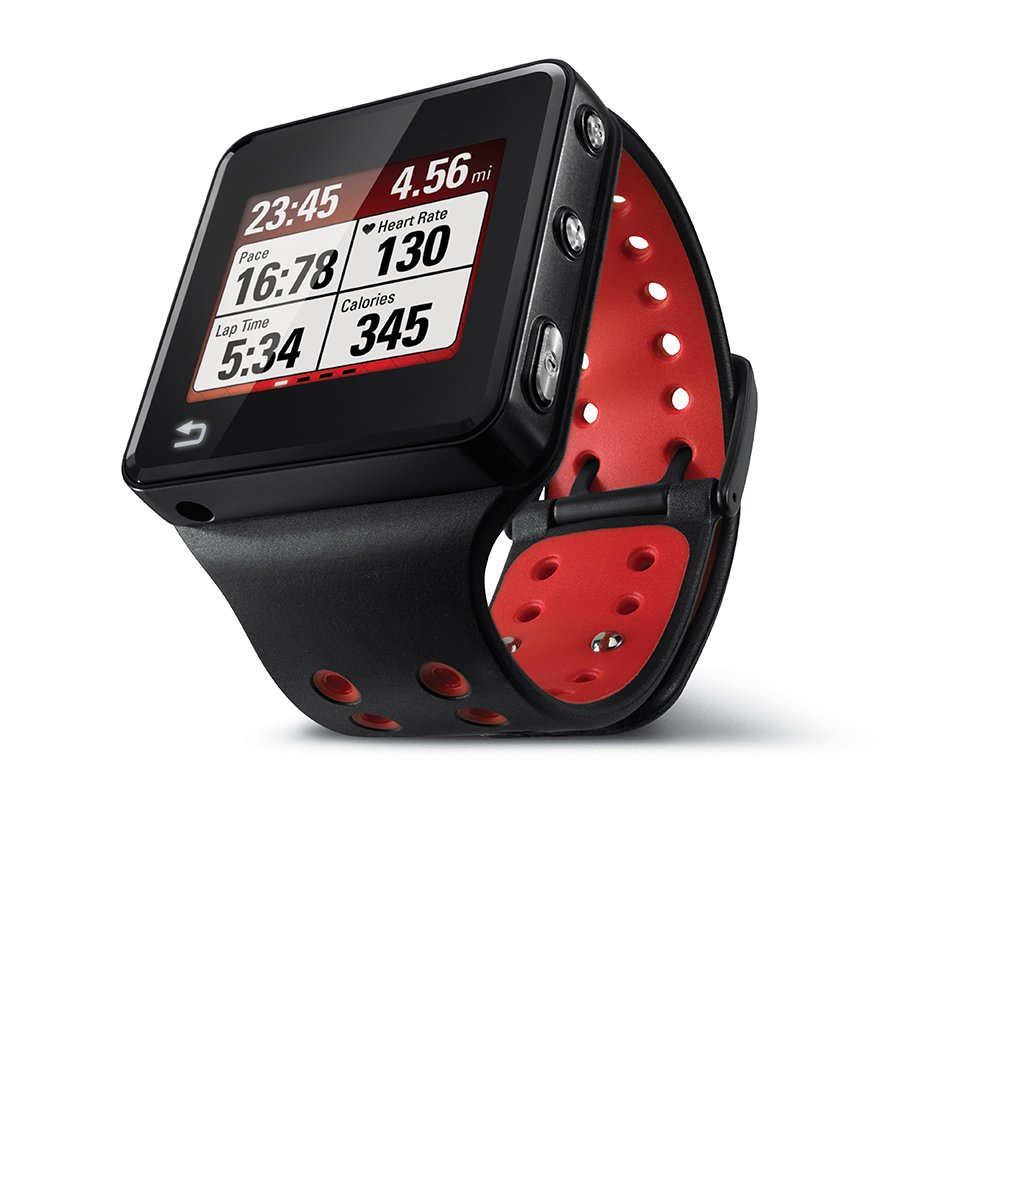 Motorola Motoactv 8gb Gps Sports Watch And Mp3 Player Photo Of A Heart Rate Monitor Showing Chest Strap With Wrist Discontinued By Manufacturer Cell Phones Accessories